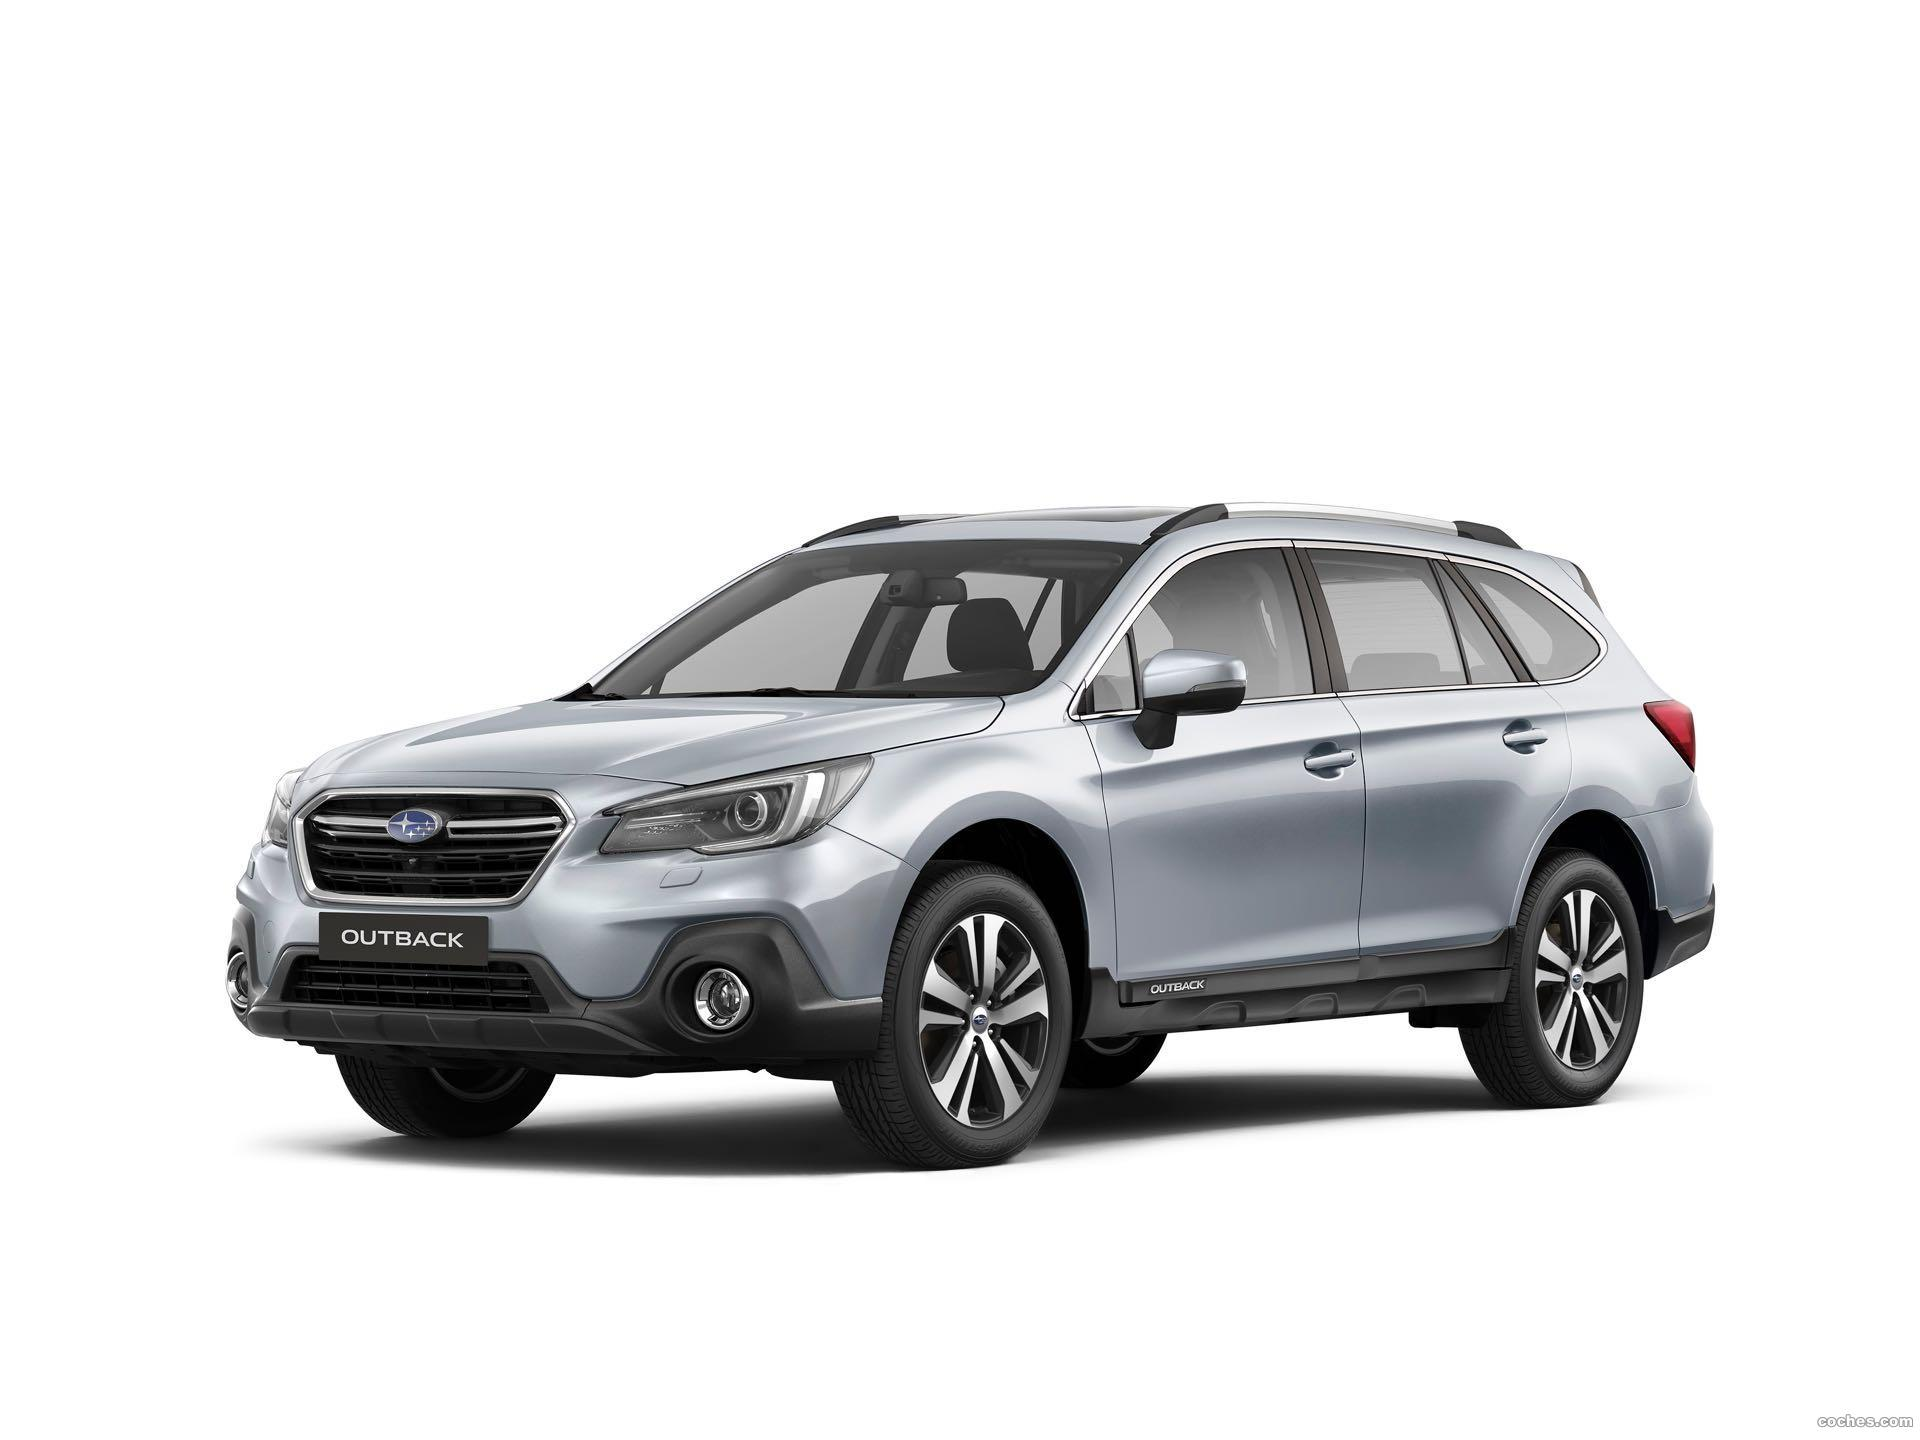 Foto 1 de Subaru Outback Executive Plus 2018